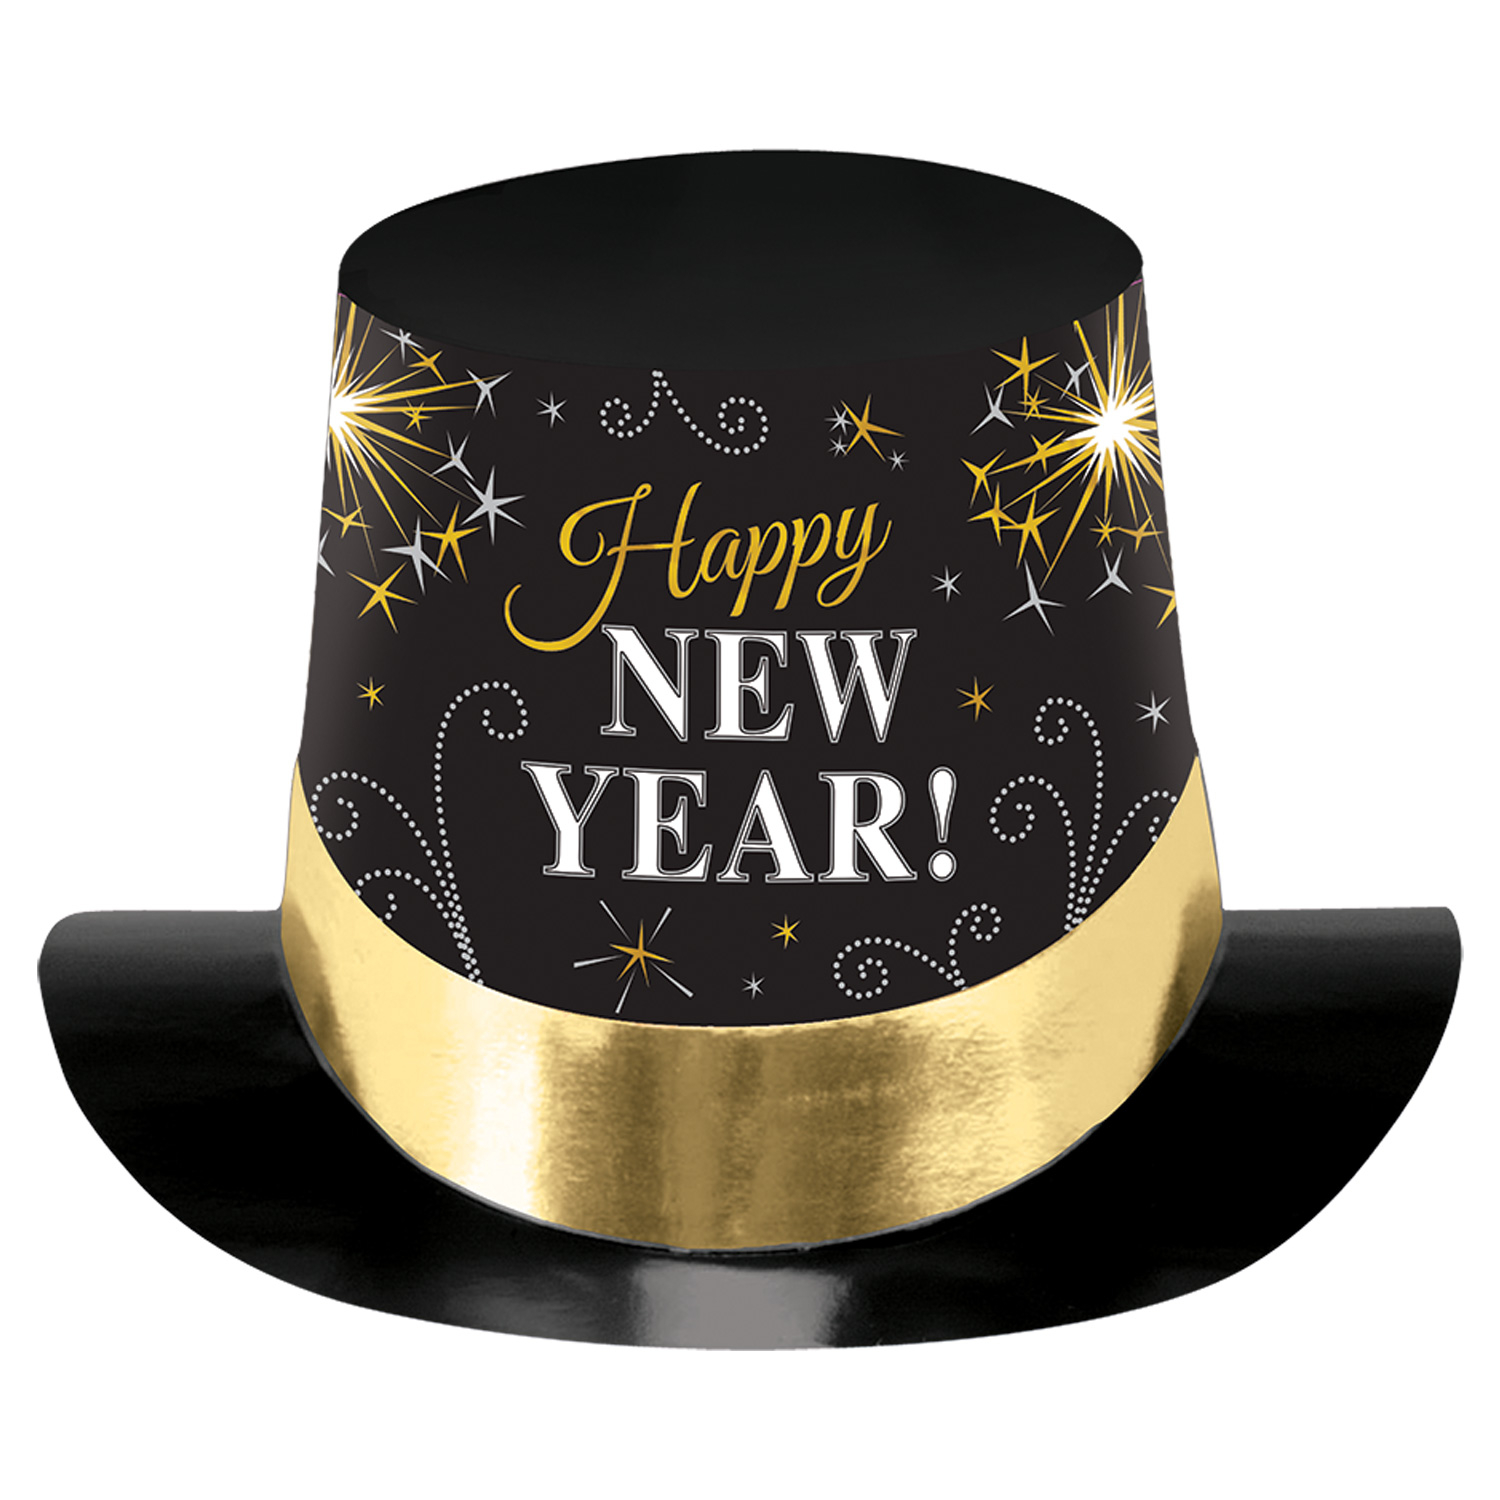 Happy New Year Black, Silver & Gold Printed Foil Top Hats ...